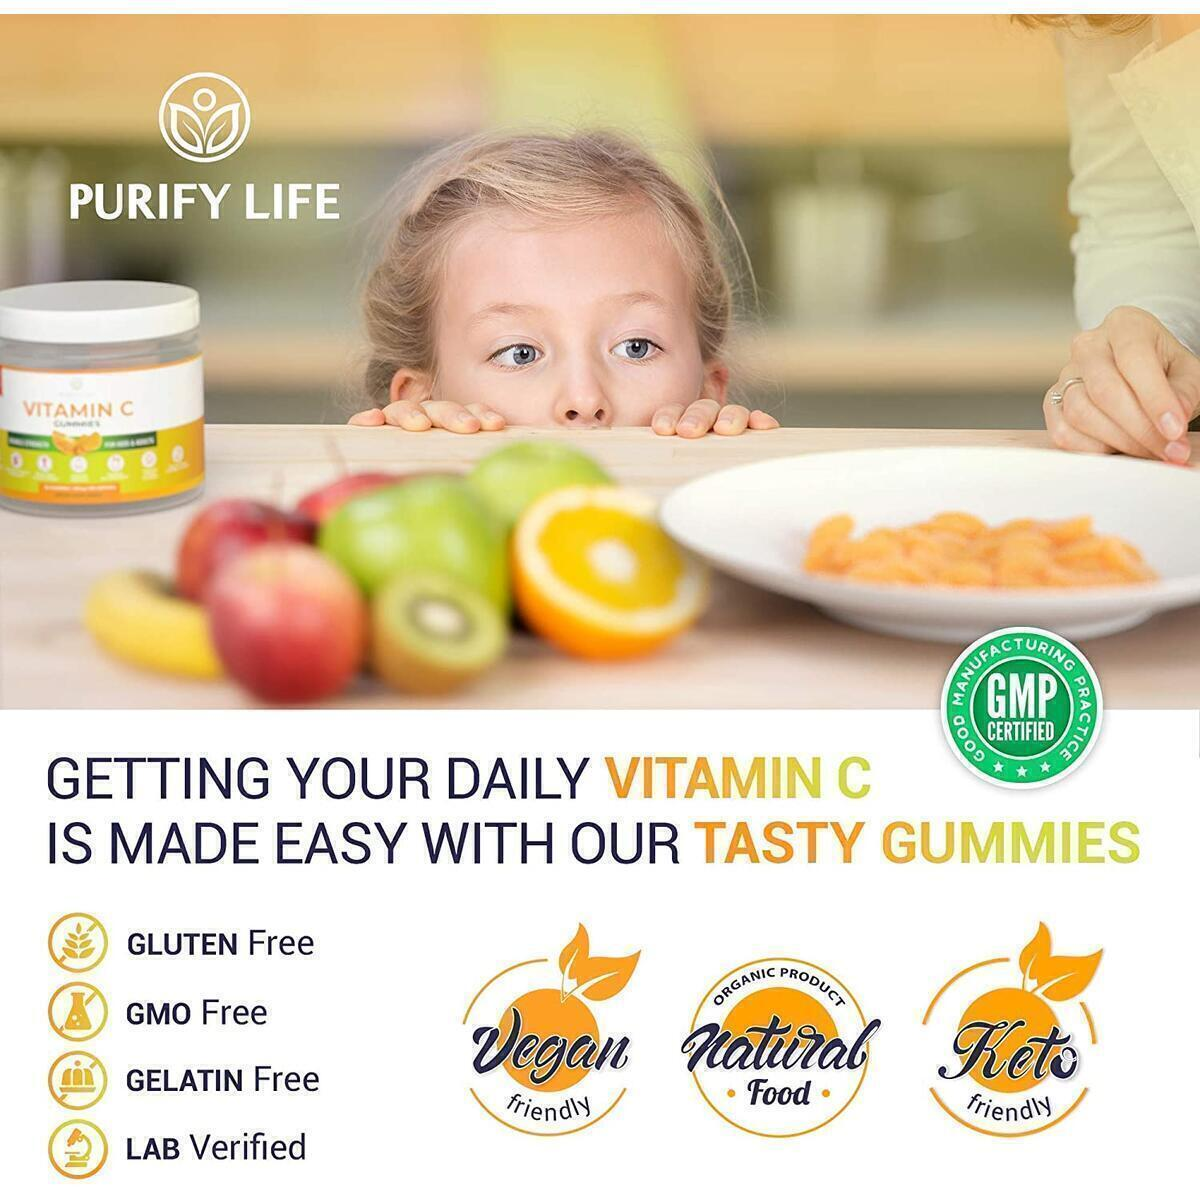 Vitamin C Gummies for Kids & Adults (Bulk - 90 Gummies) 250mg Immune System Support [Double Strength] in Chewable Orange Slices - Vegan Pectin Based, No Gelatin, Citrus Immunity Booster Supplement For Cold Cough & Allergy Relief